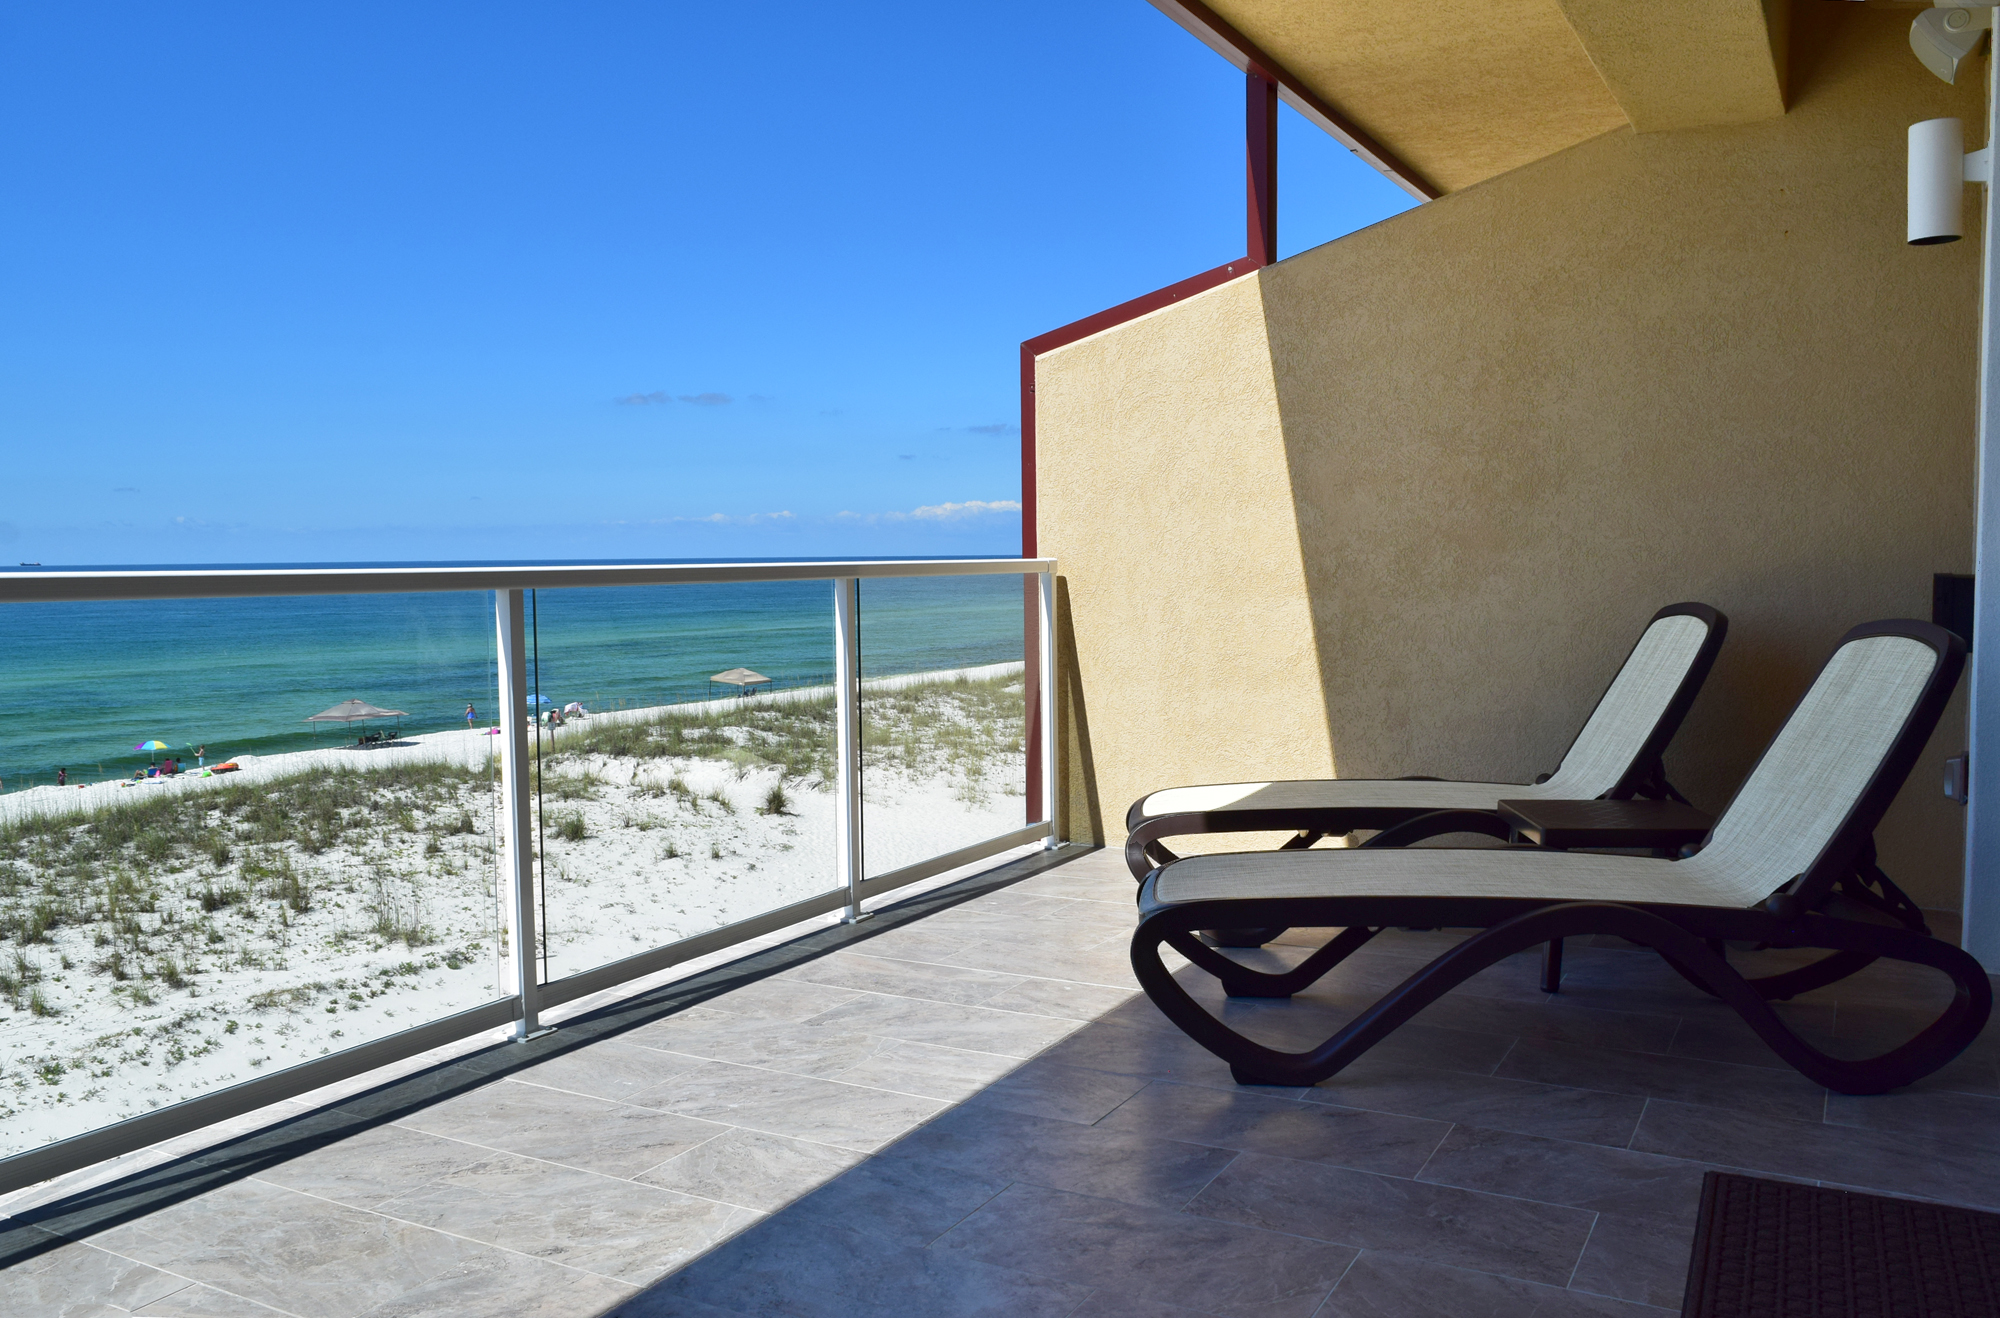 Regency Cabanas #B6 Condo rental in Regency Cabanas Pensacola Beach in Pensacola Beach Florida - #31